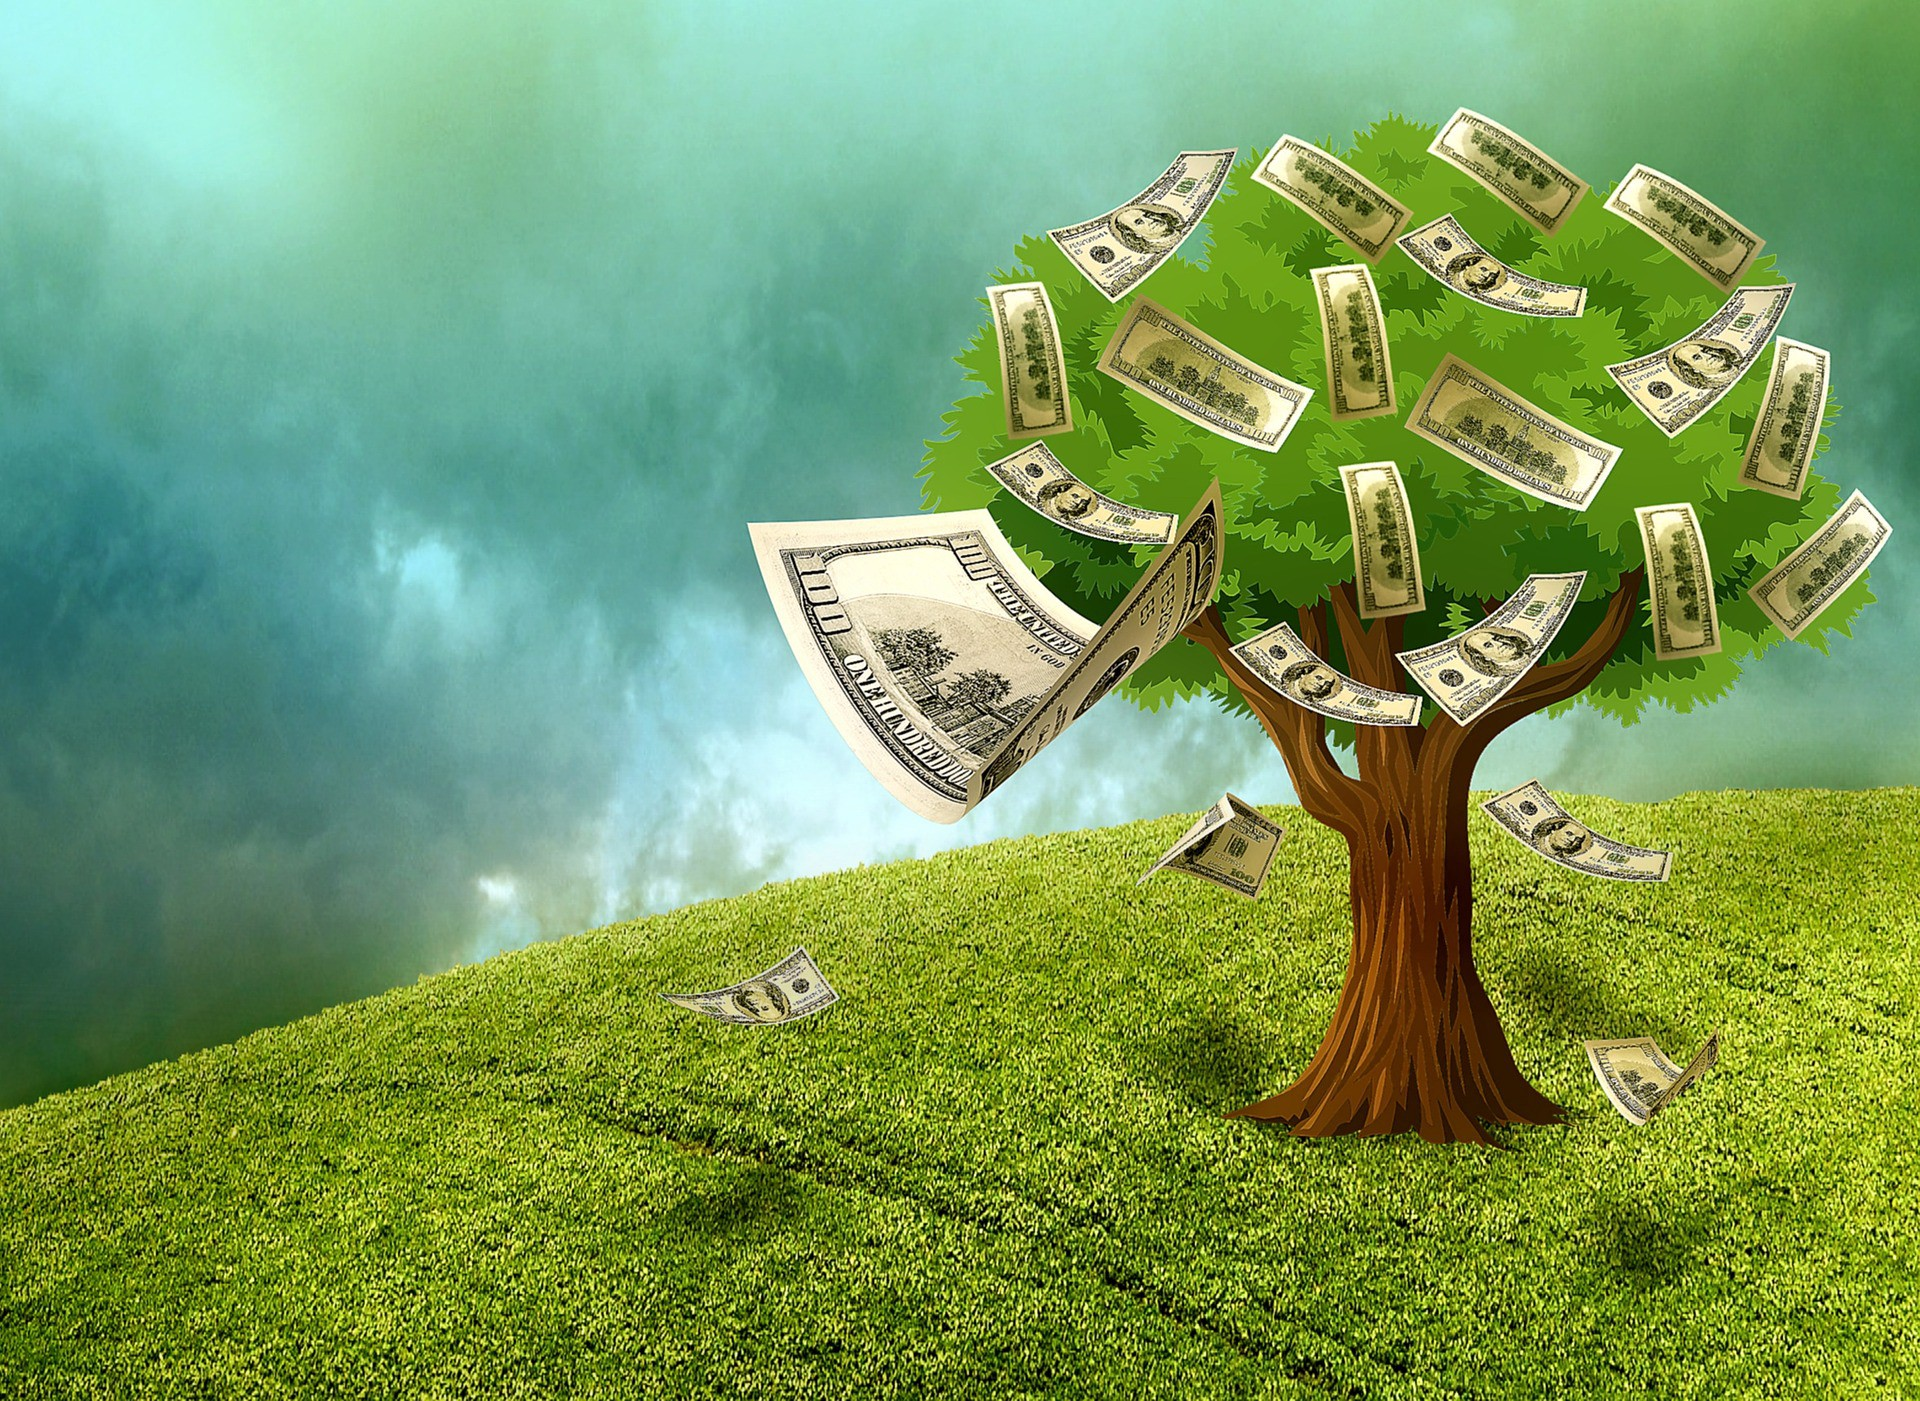 Tree with money blowing into the wind